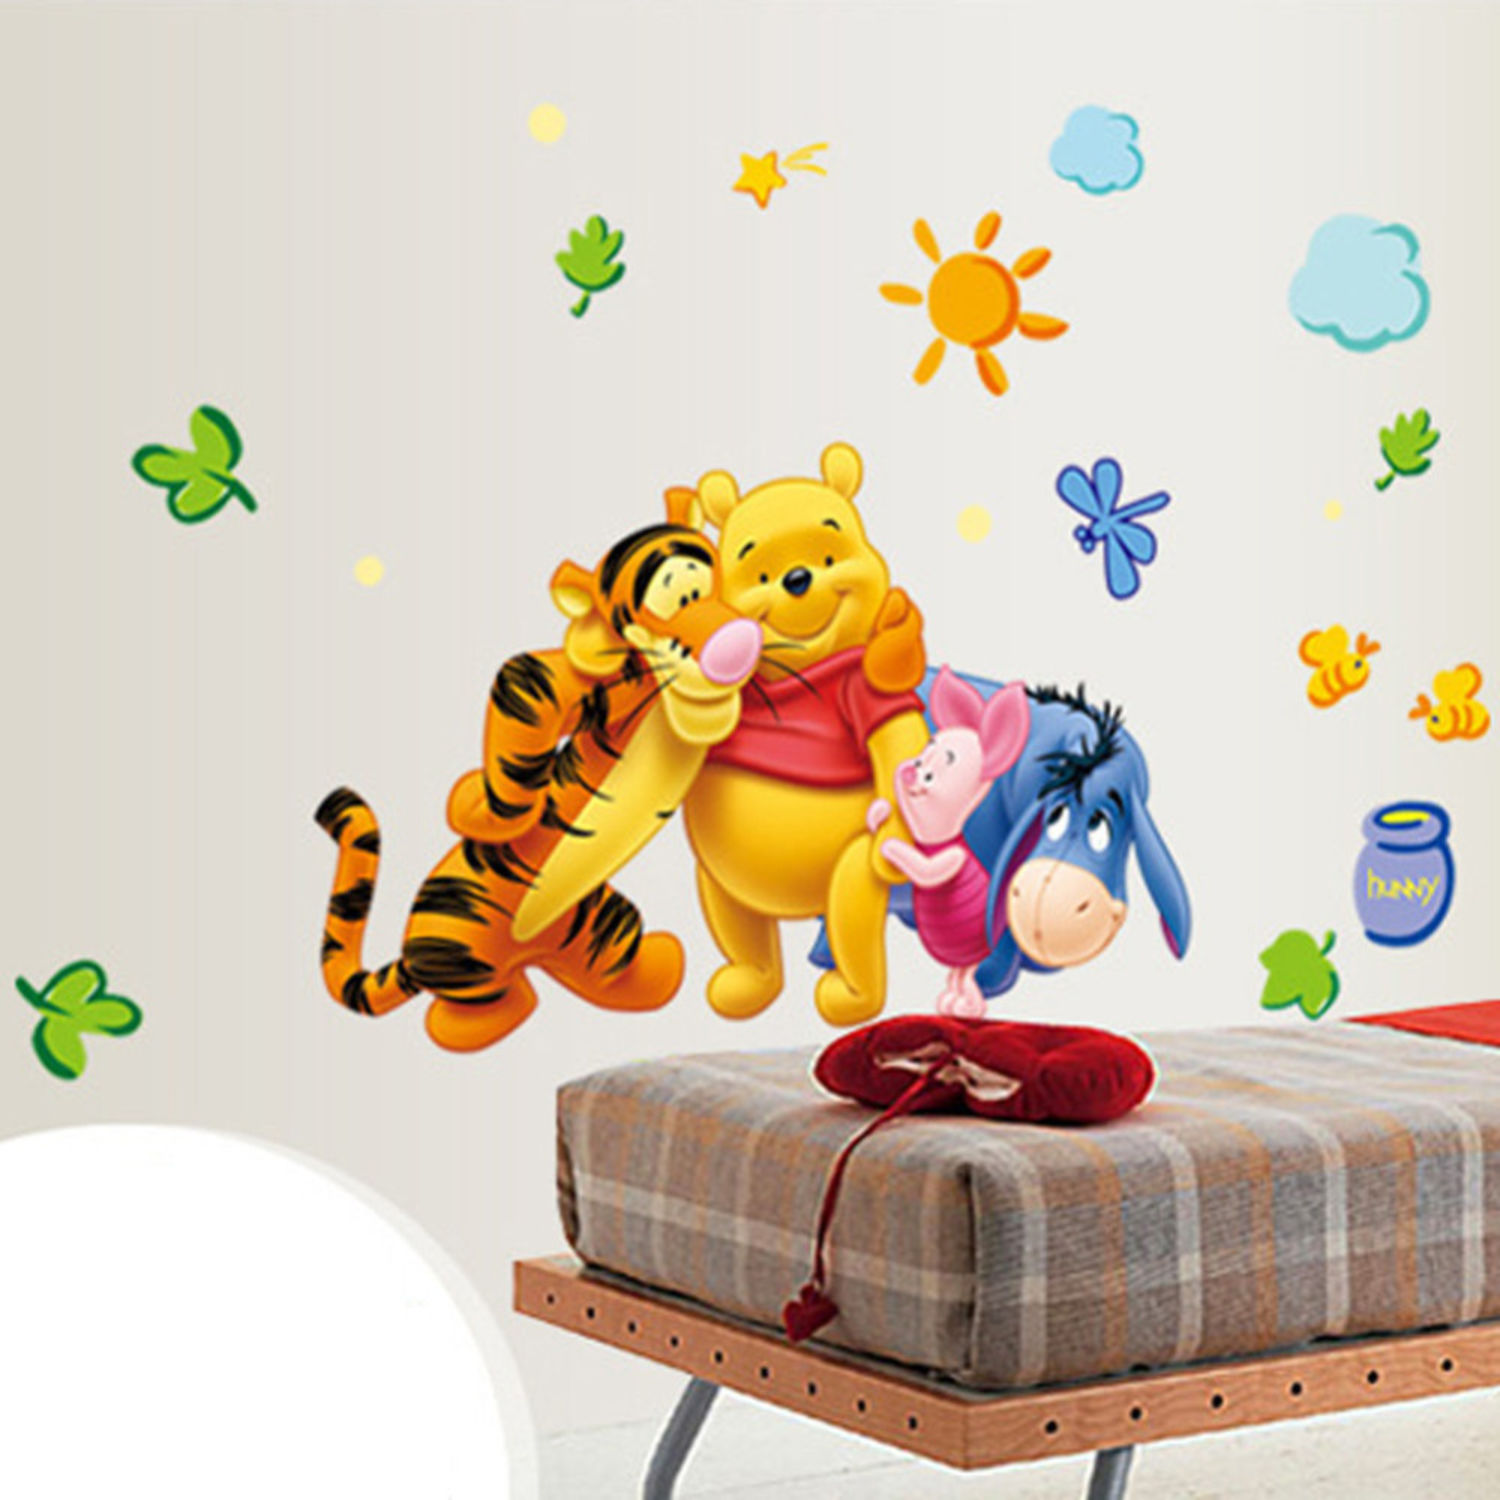 winnie pooh wandsticker wandtattoo aufkleber b r sticker wandaufkleber ebay. Black Bedroom Furniture Sets. Home Design Ideas